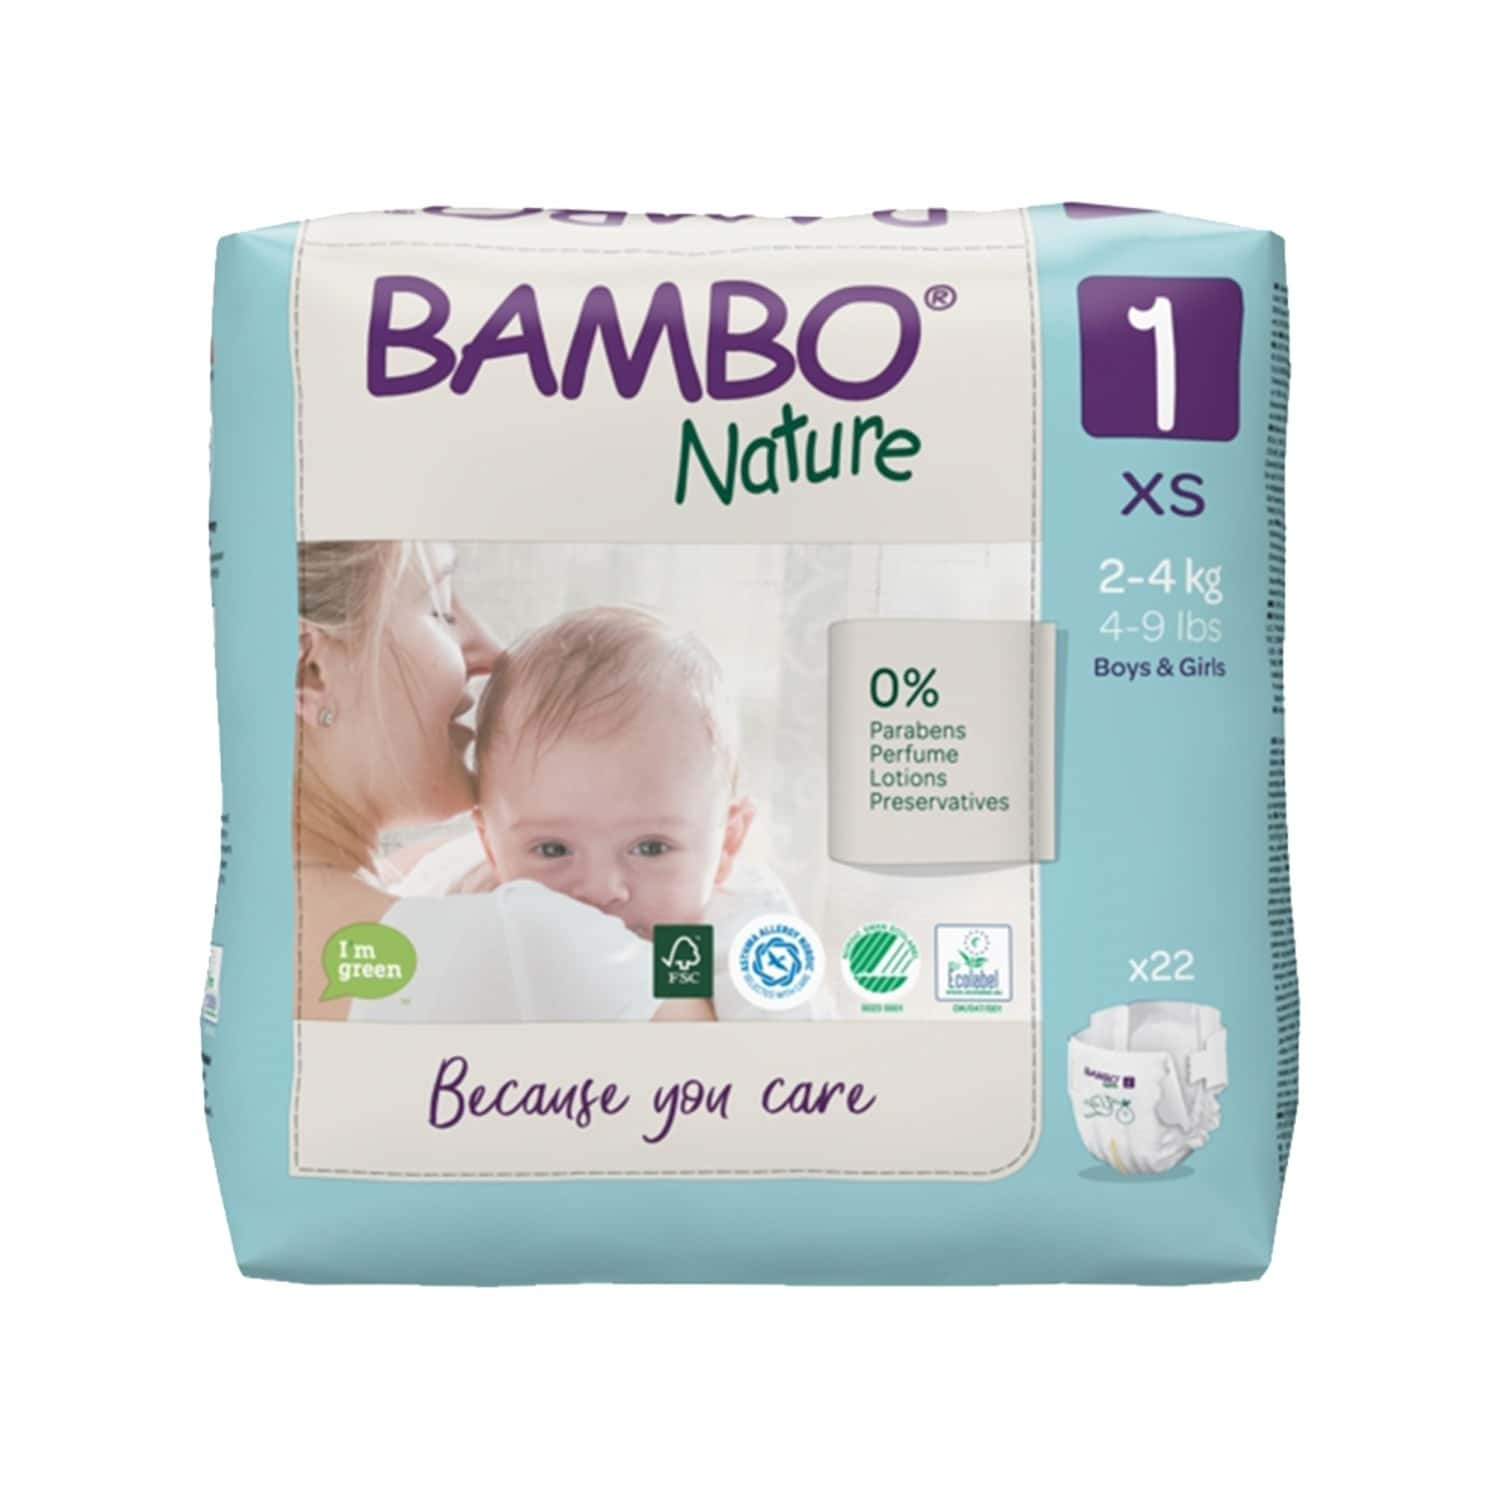 Bambo Nature Xs Size Diaper With Wetness Indicator - 22 Diapers